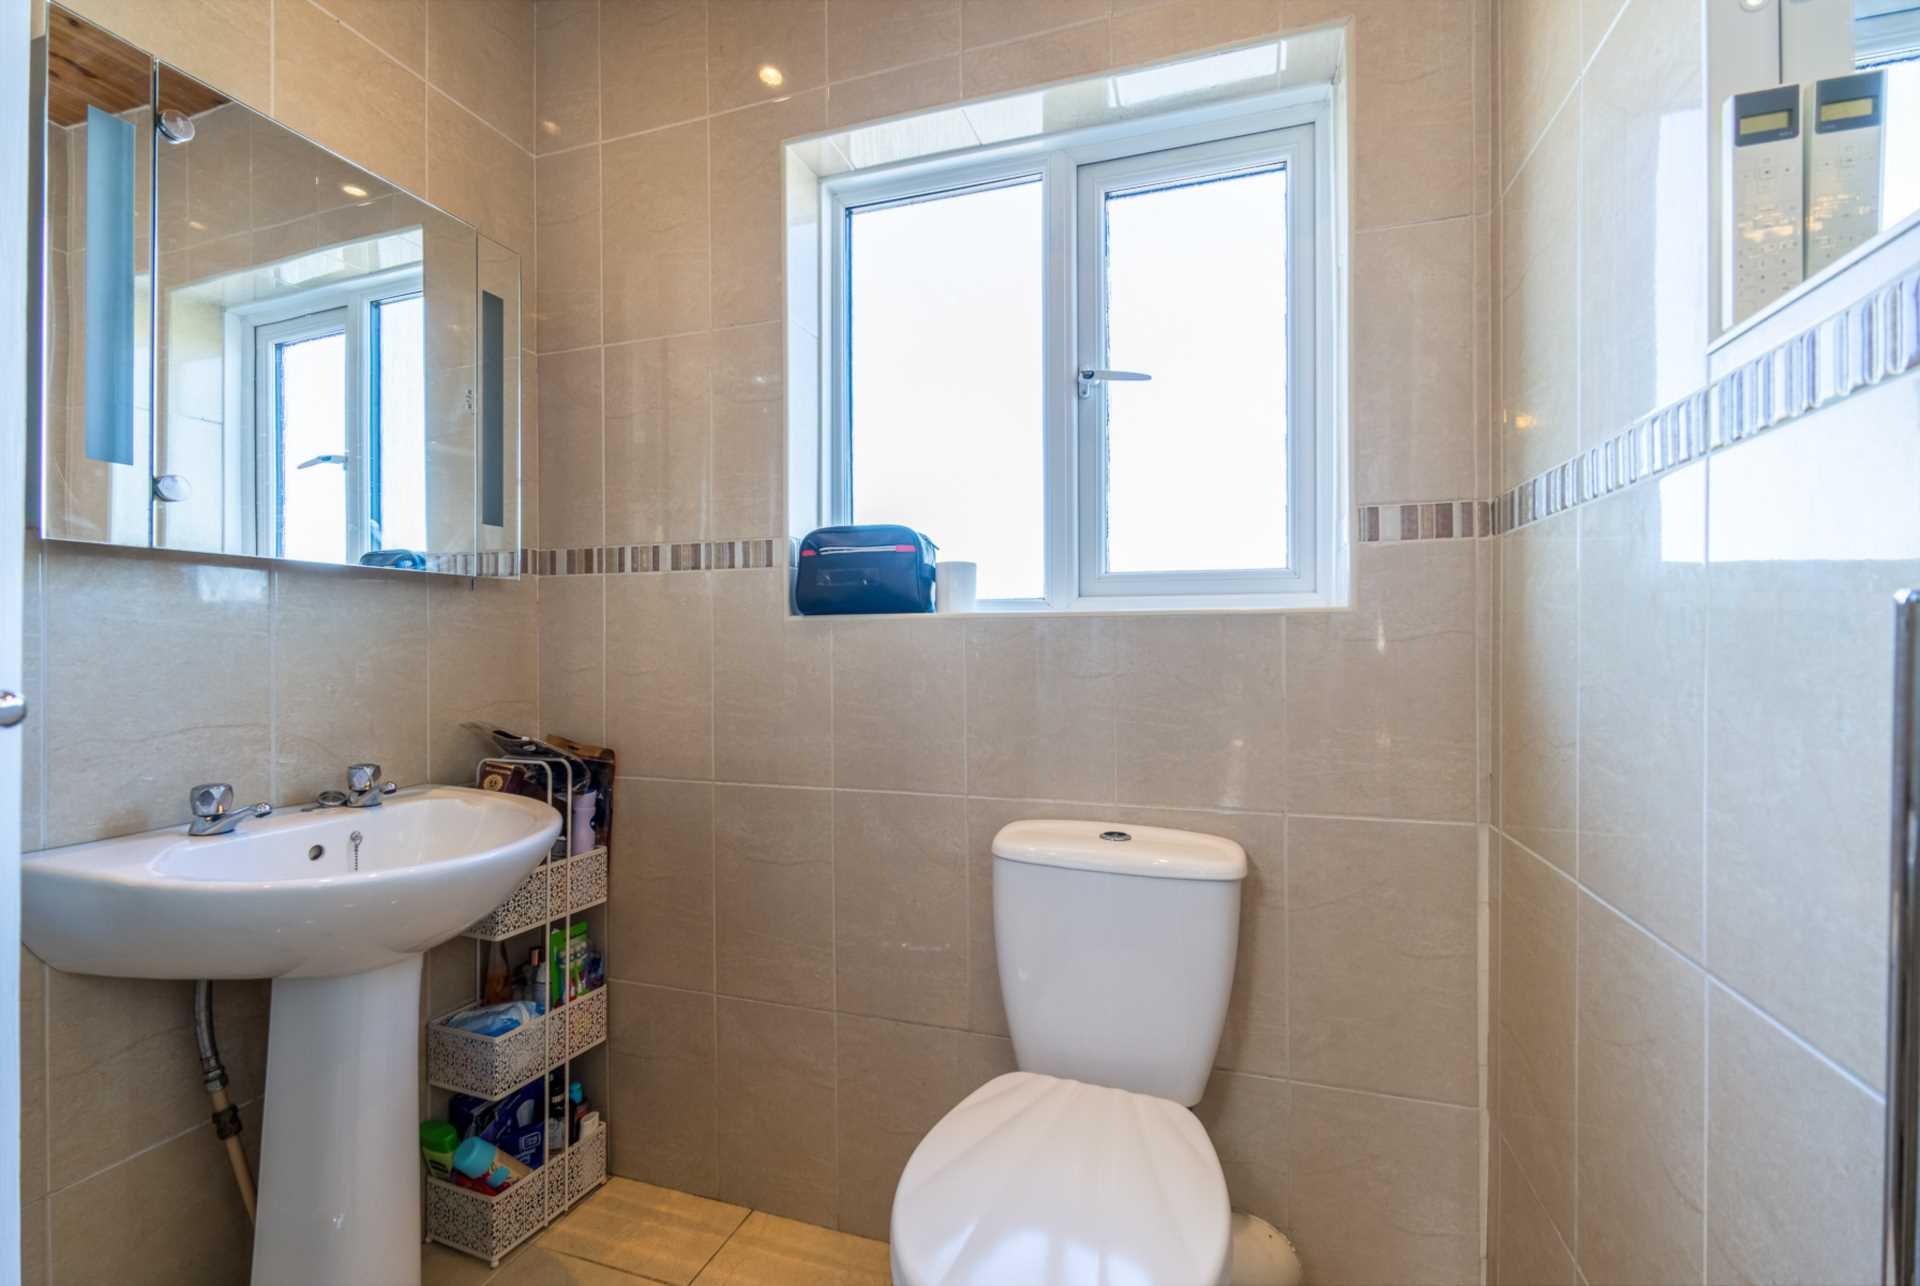 38 St James Road, Walkinstown, Dublin 12, Image 16